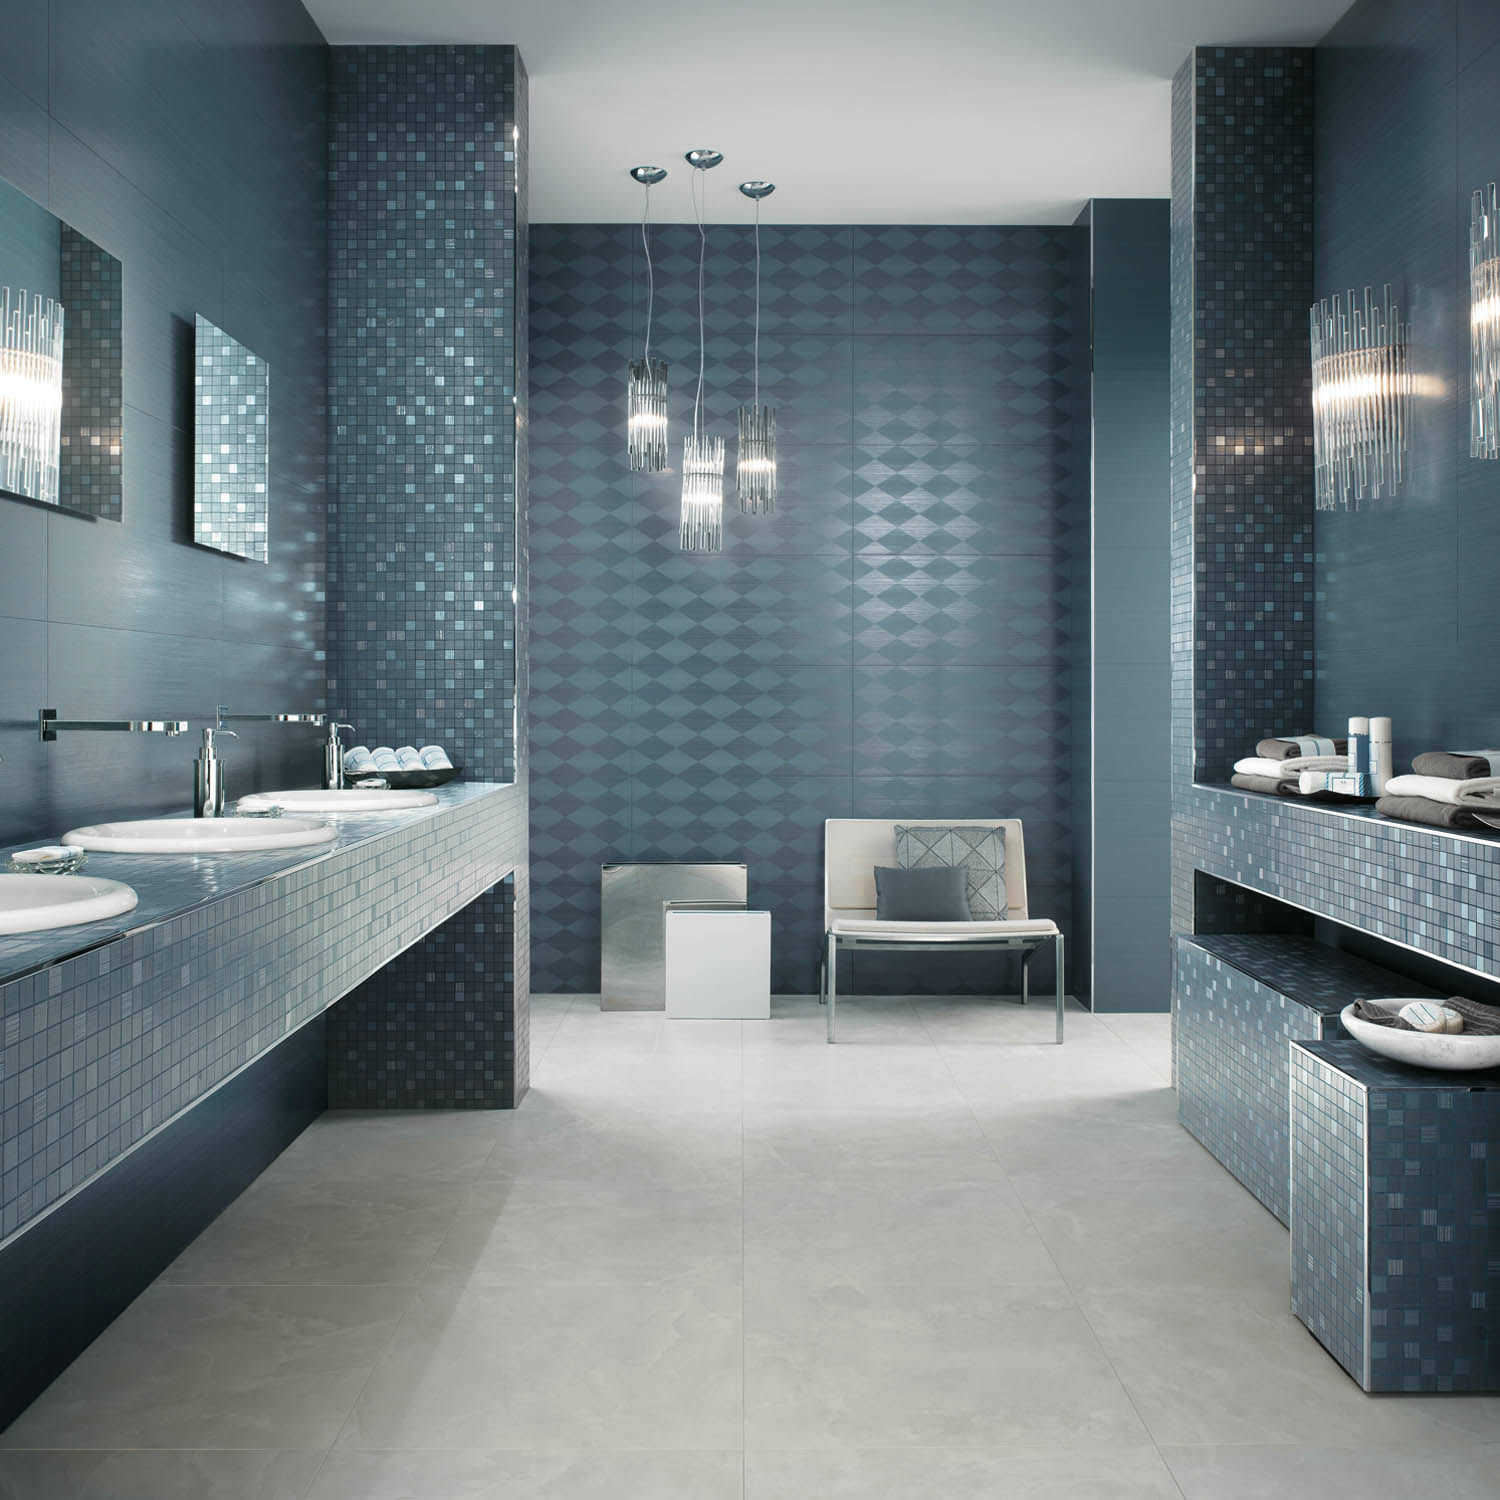 31 30 29 28 27. 27 great ideas about sea glass bathroom tile